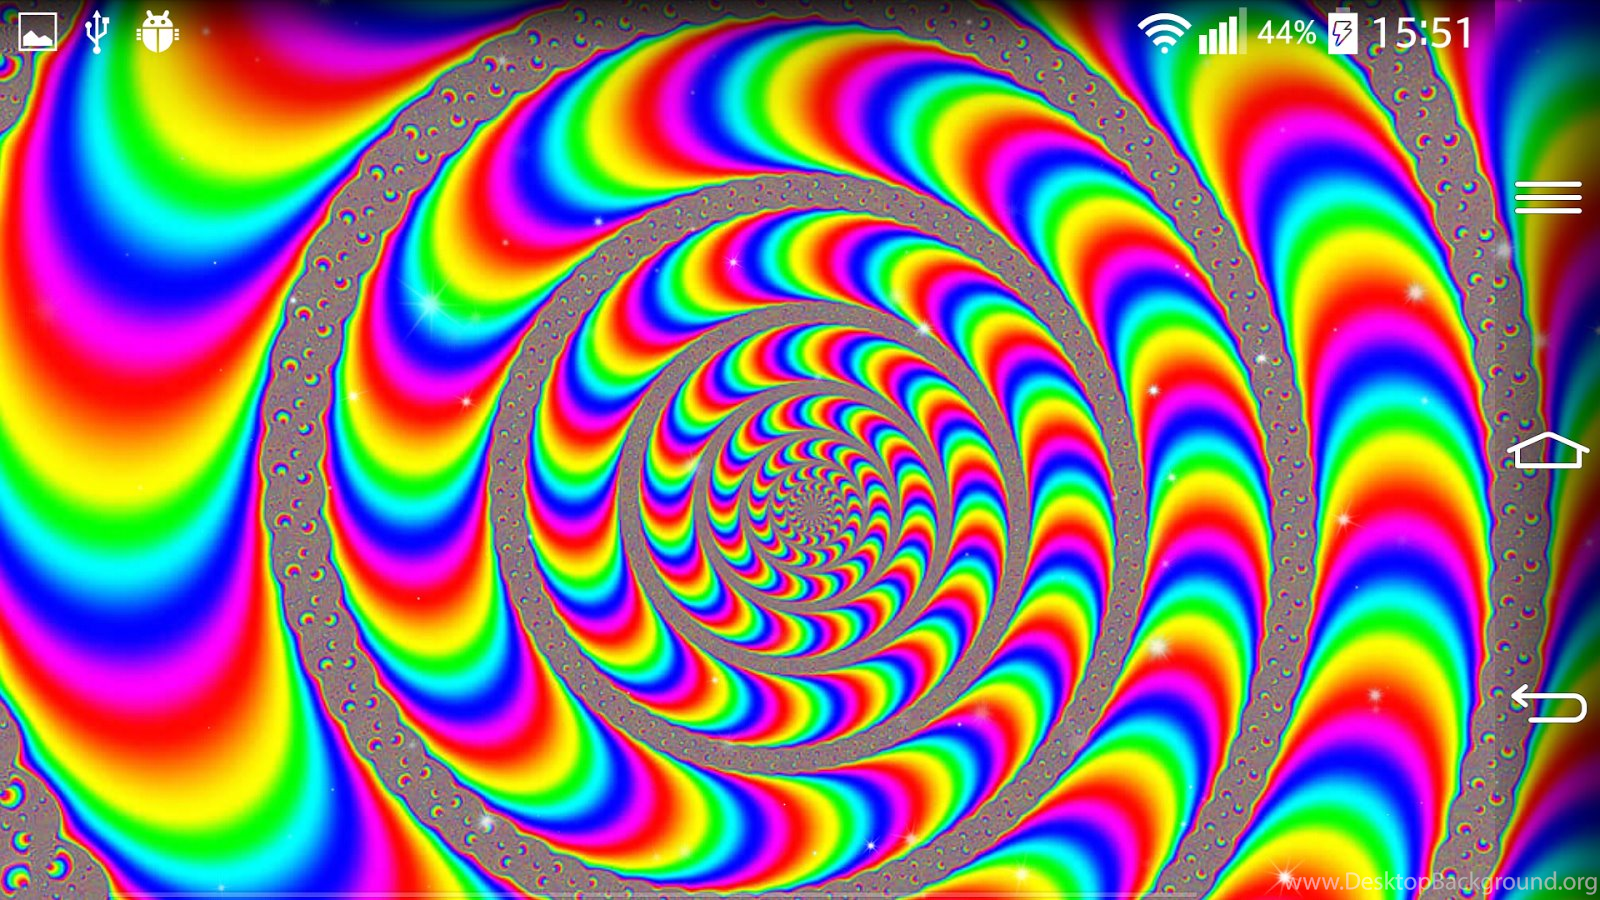 Optical illusions hd wallpapers android apps on google play desktop background - Optical illusion wallpaper hd ...